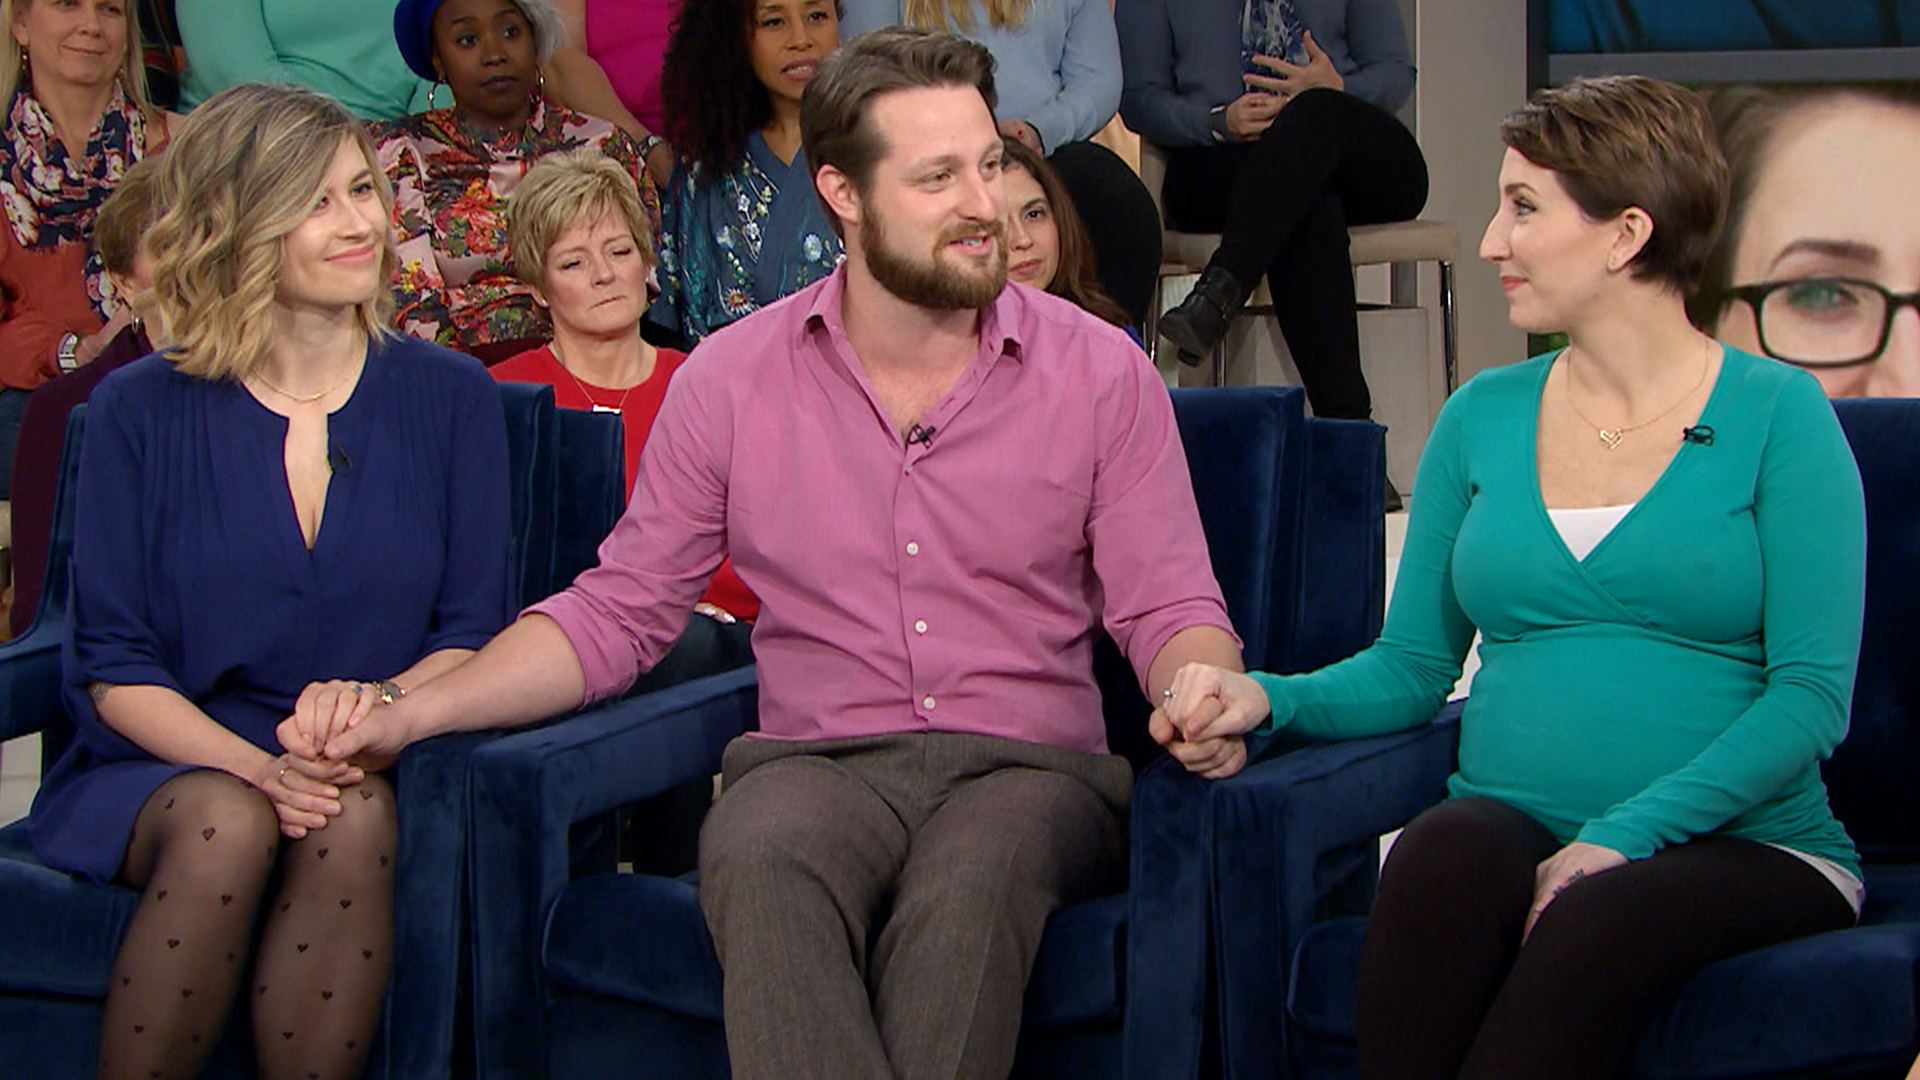 Polyamory And Family 1 Dad, 2 Moms Raise Kids Together - Todaycom-8142